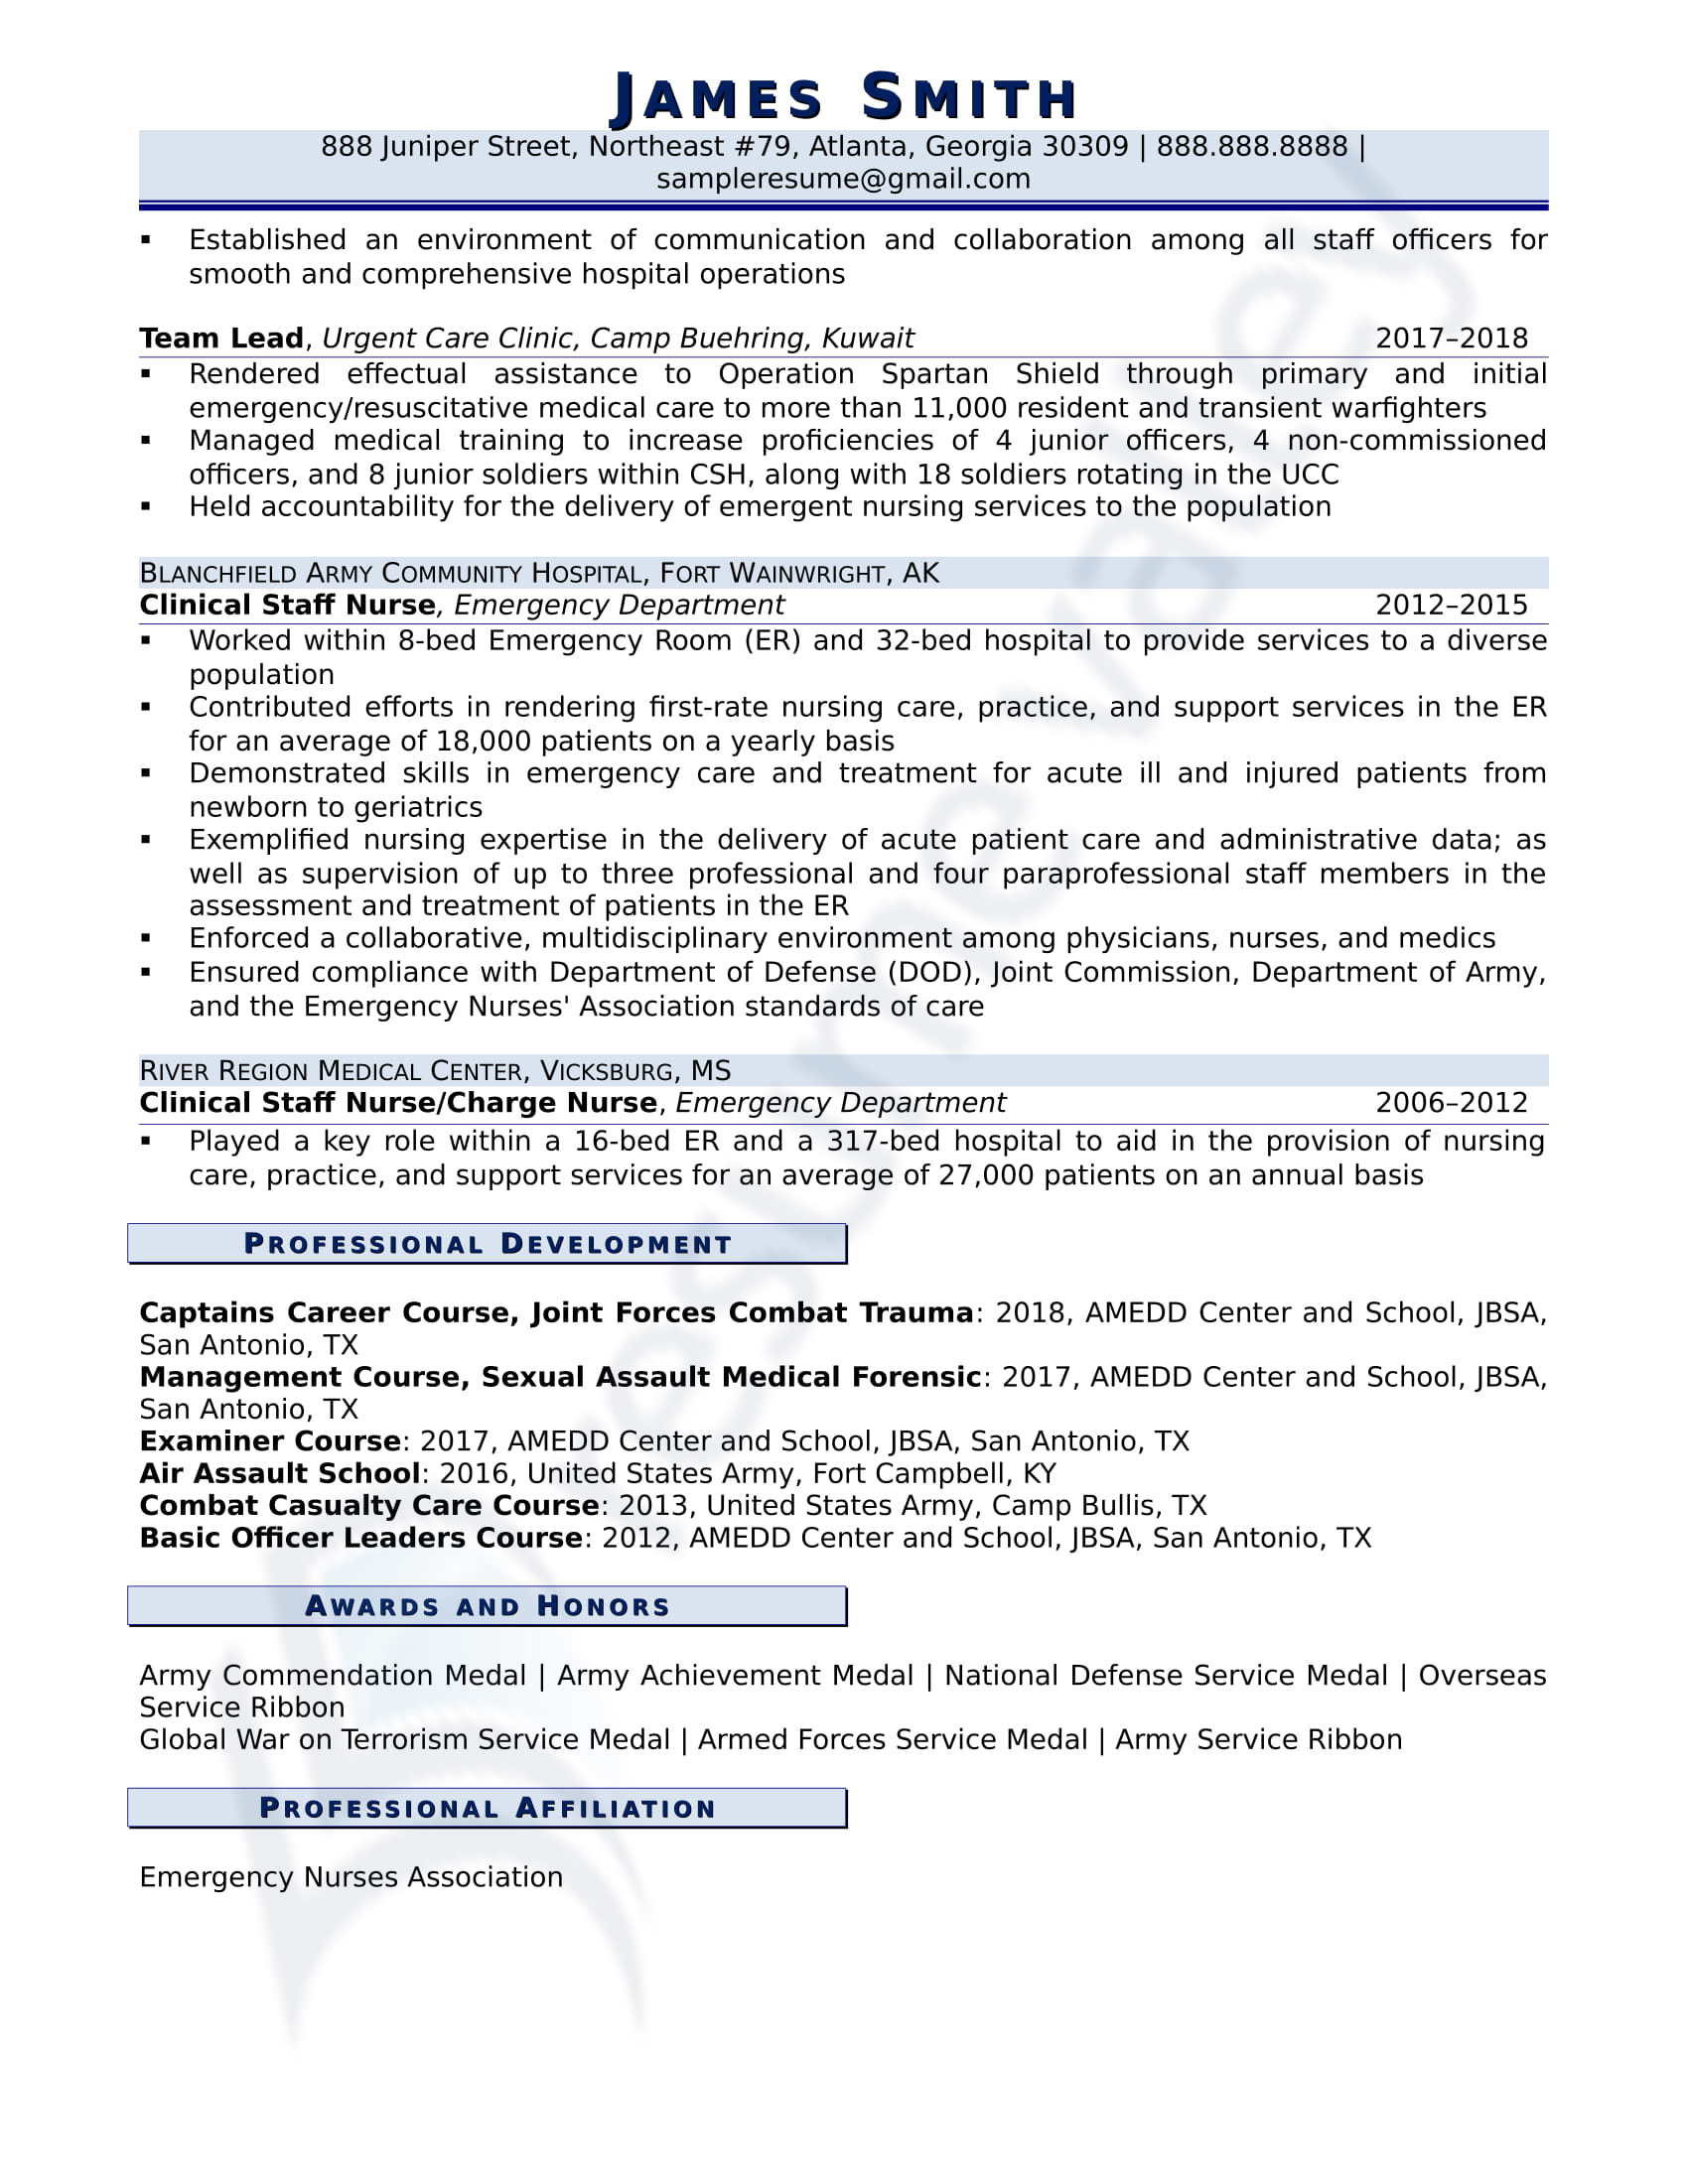 Mtech Resume Samples to Download in PDF